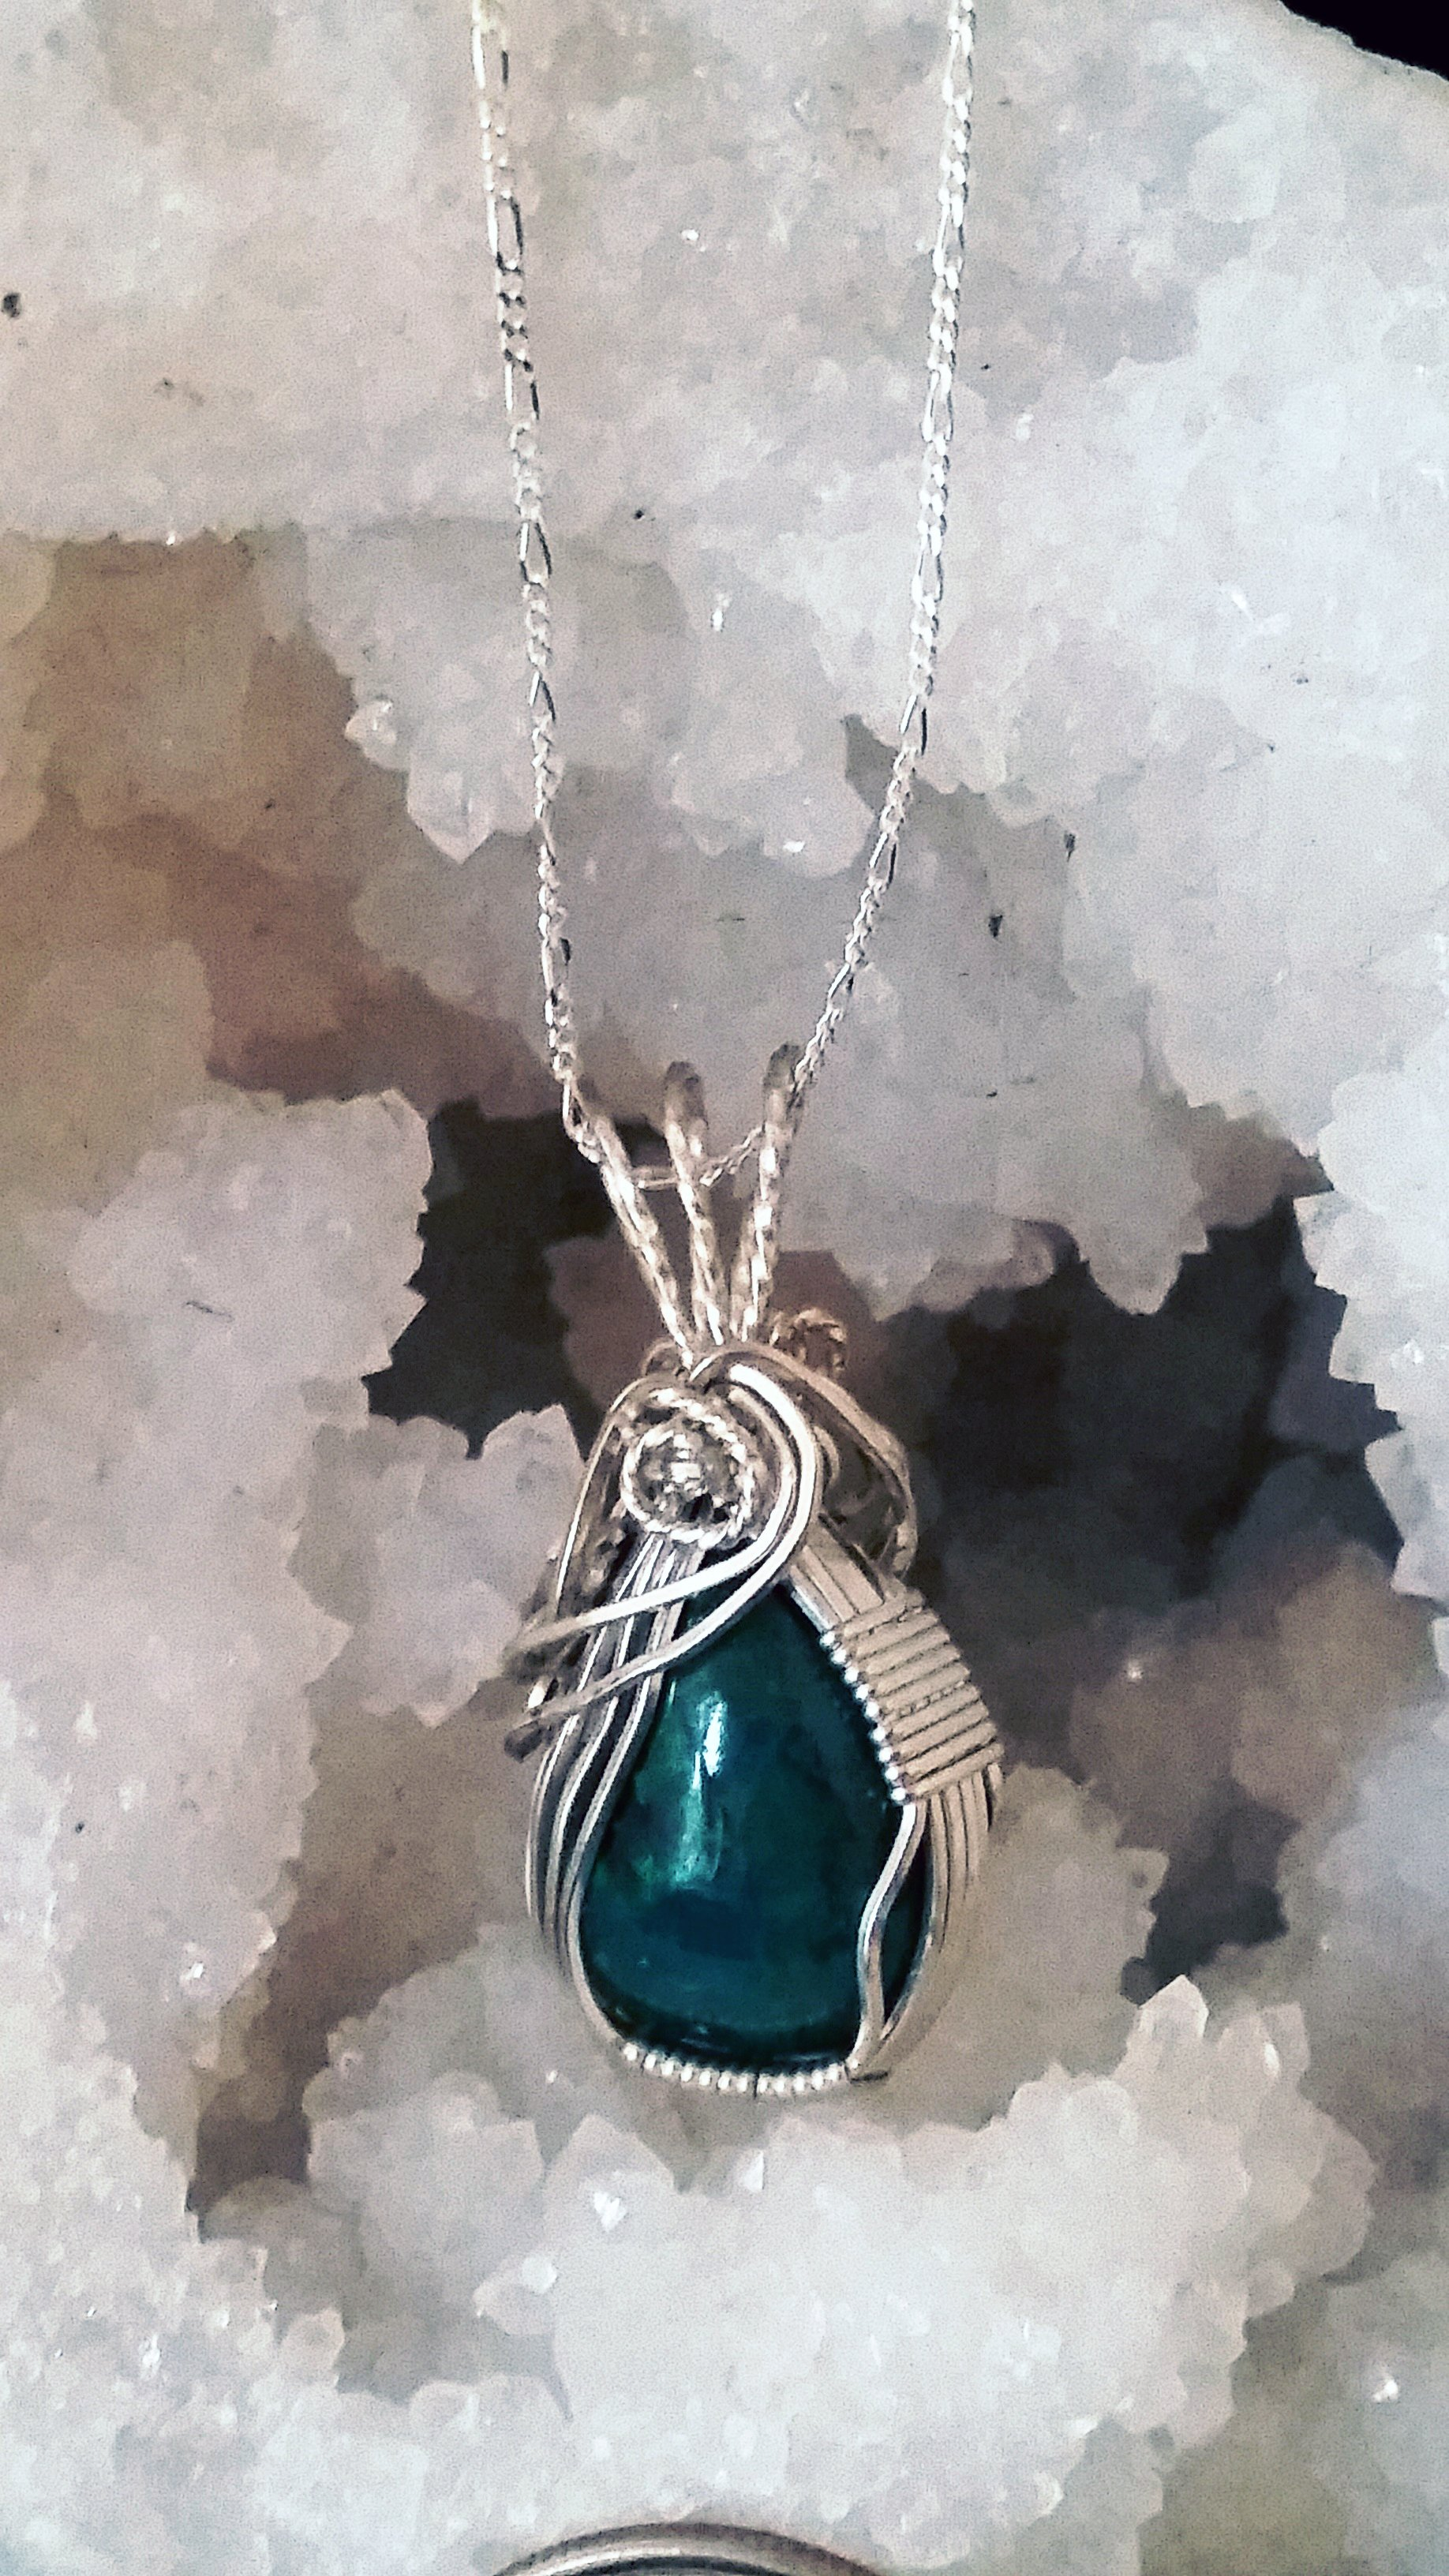 This beautiful Malachite-Chrysocolla pendant brings serenity, tranquility, and calming energies, making it a beautiful crystal to wear as a pendant. It brings the energy of new beginnings, helping to facilitate smooth transitions in times of change.